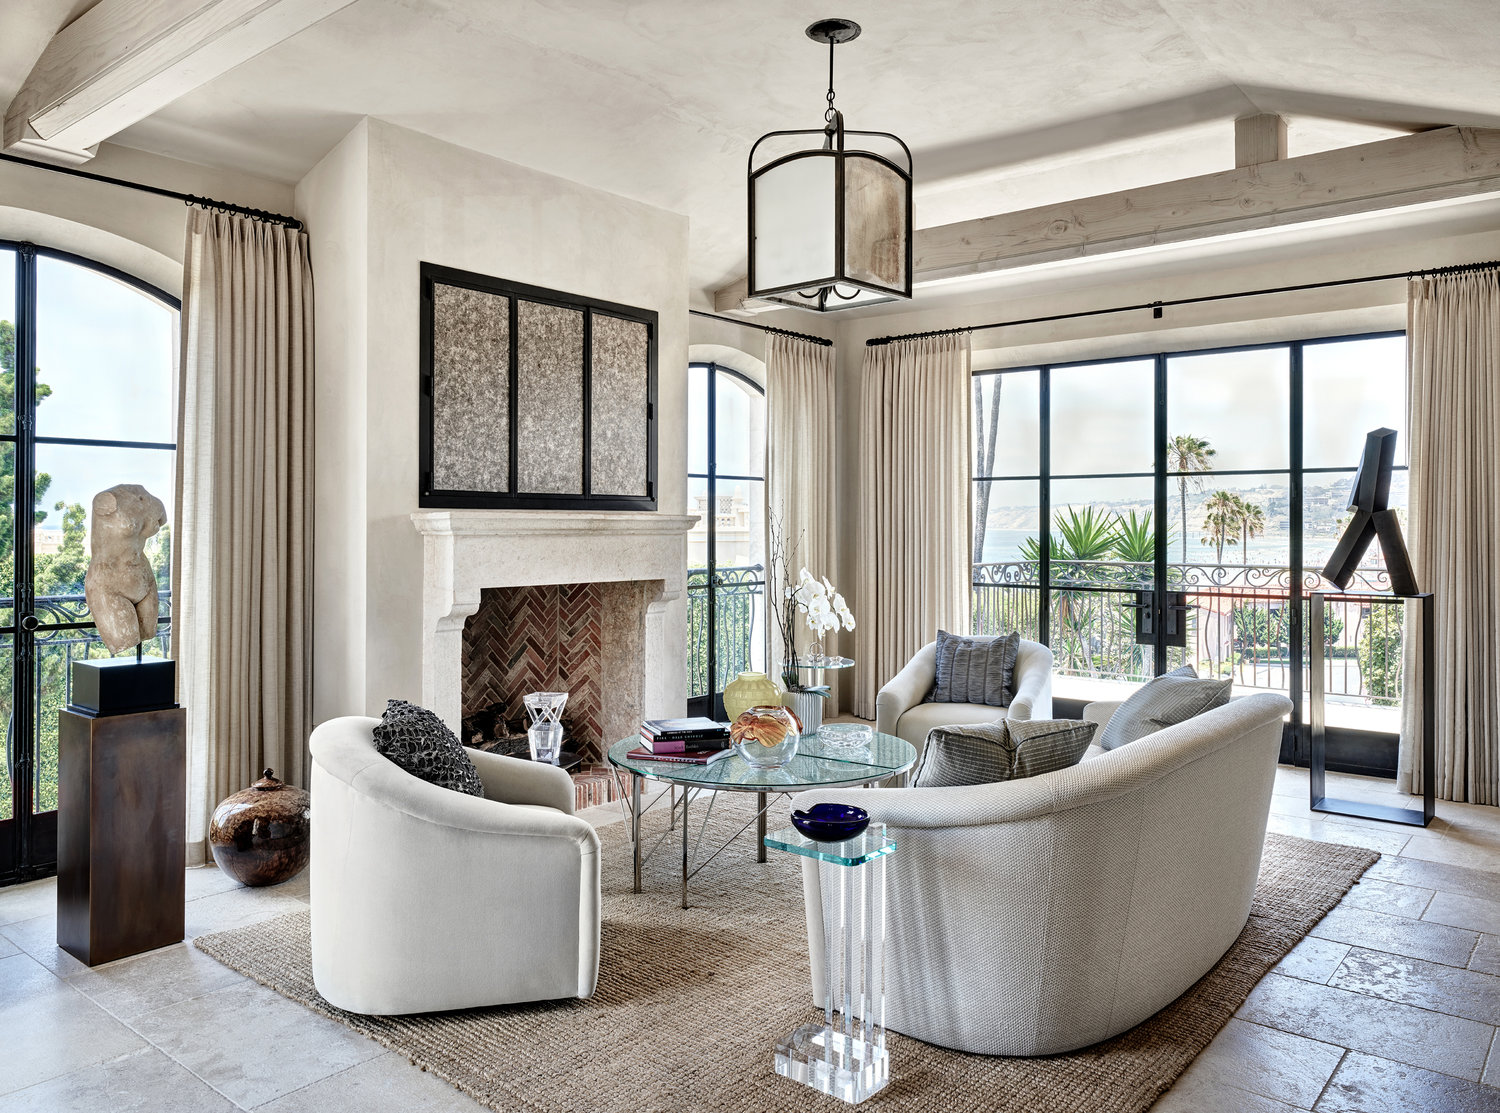 Drexel patterson and tony crisafi are the highly accomplished principal architects creating residences of quiet luxury throughout southern california